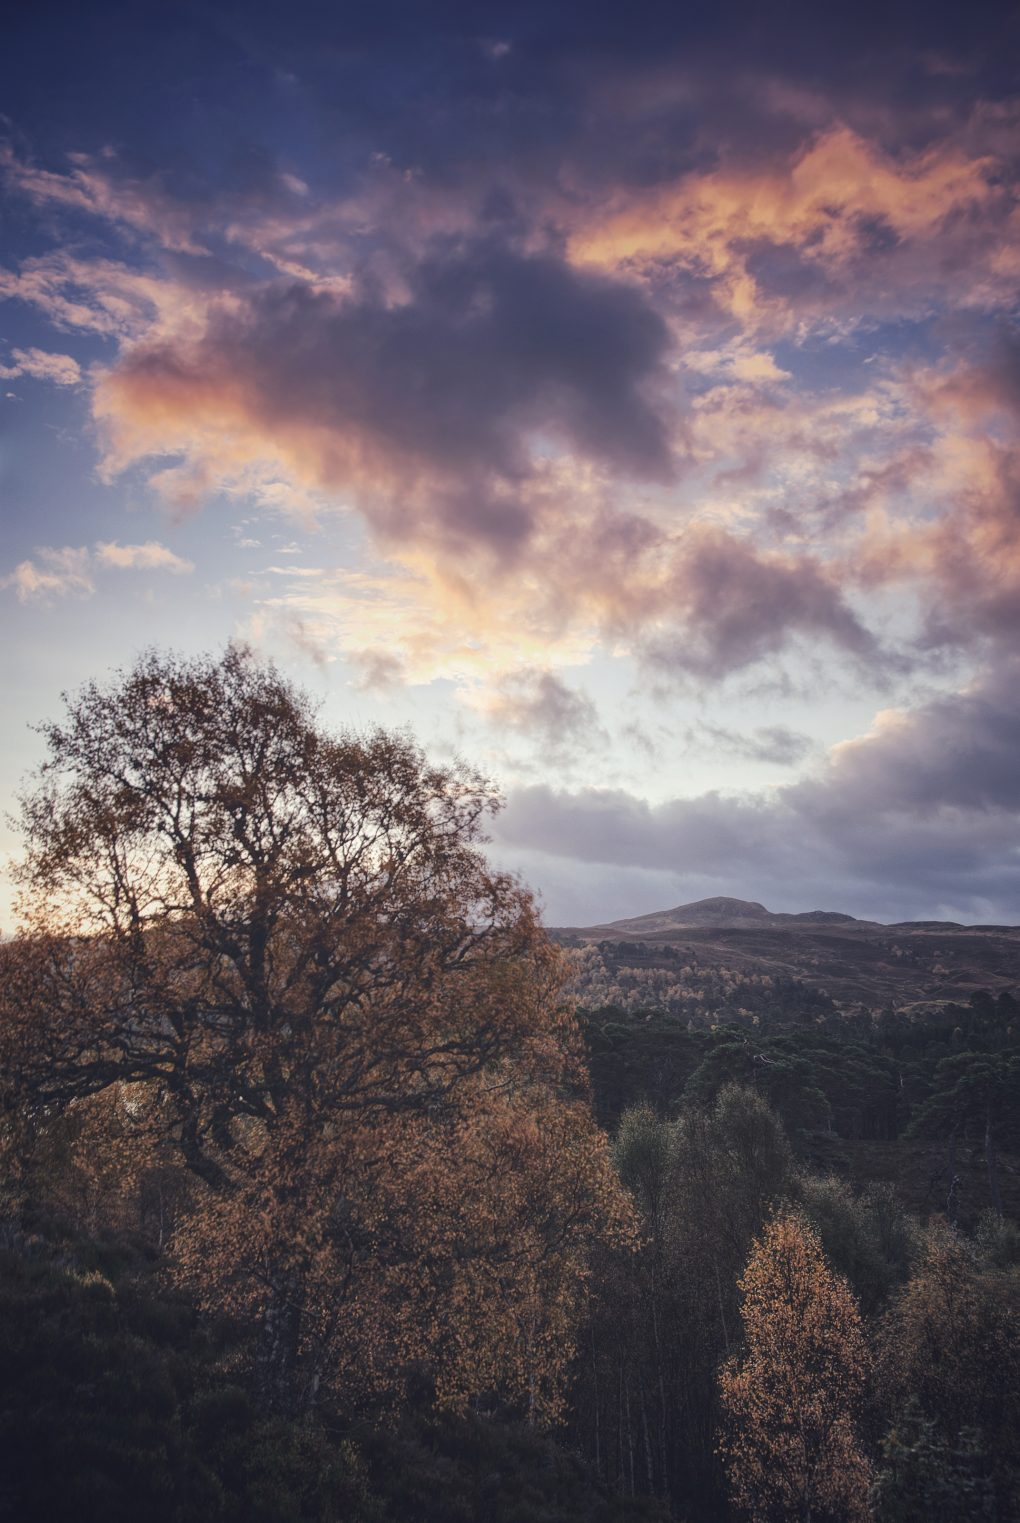 Vibrant orange and red tones as the first proper bright light of dawn illuminates clouds over the forest, Glen Affric.